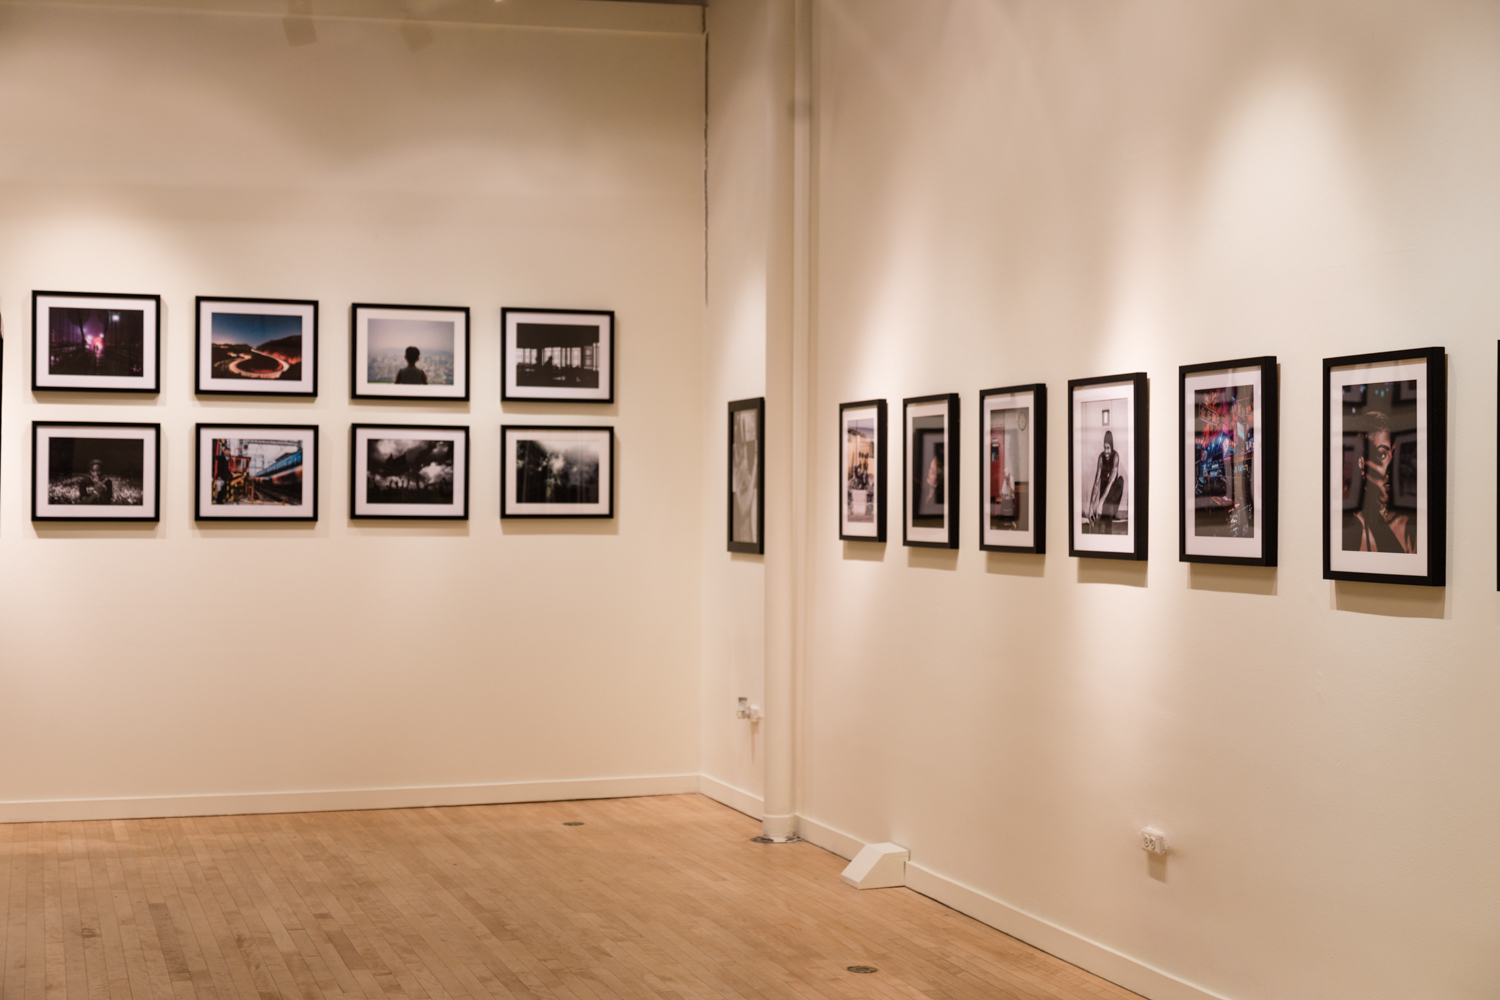 """Treason Gallery, in collaboration with photographer Steven John Irby aka """"Steve Sweatpants"""" and HONEST FRAMES, is proud to present 'SHOOTERS,' a group photography exhibition. Steve Sweatpants is one of the co-founders of Street Dreams Magazine, a quarterly distributed photo journal featuring photographers from around the globe shooting in both urban and exotic locations. Using social media platforms like Instagram as tools to discover overlooked or under-appreciated talent in photography, Street Dreams Magazine provides opportunities for undiscovered talent to be spotlit and published."""